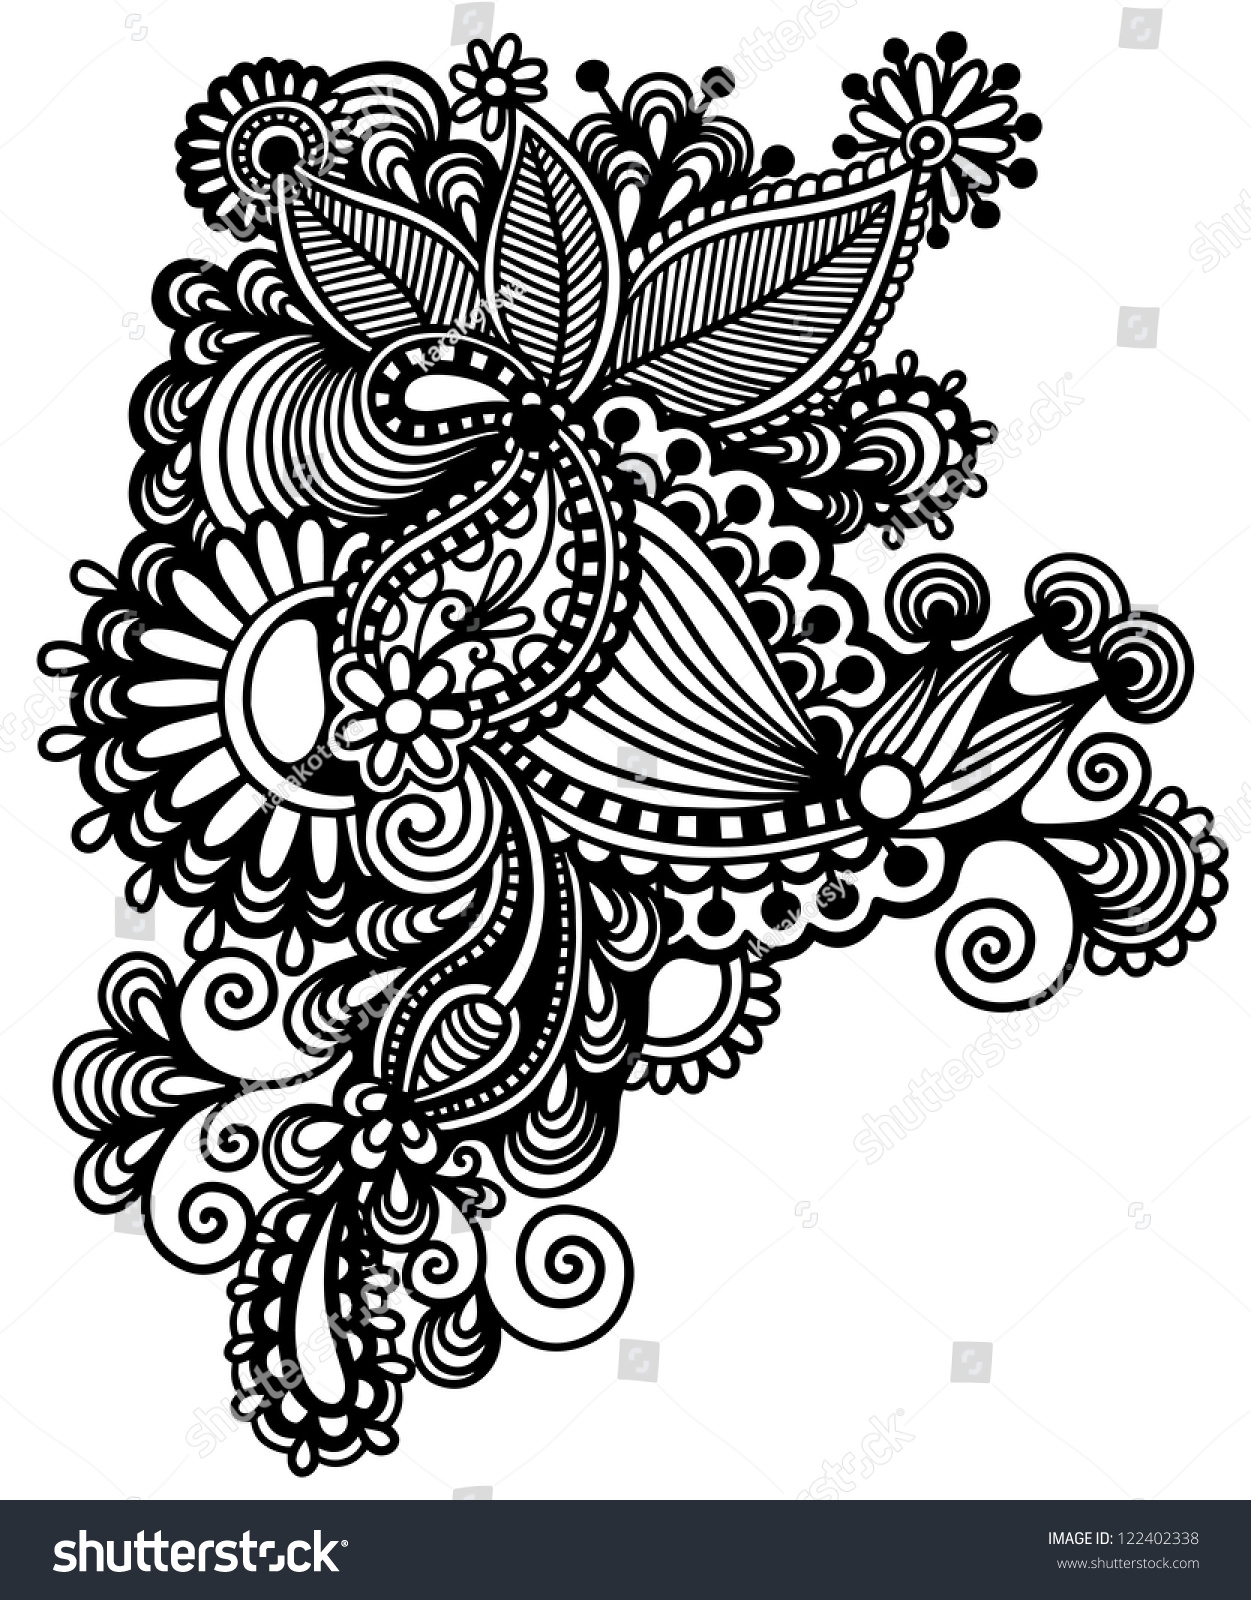 Traditional Flower Line Drawing : Original hand draw line art ornate stock illustration